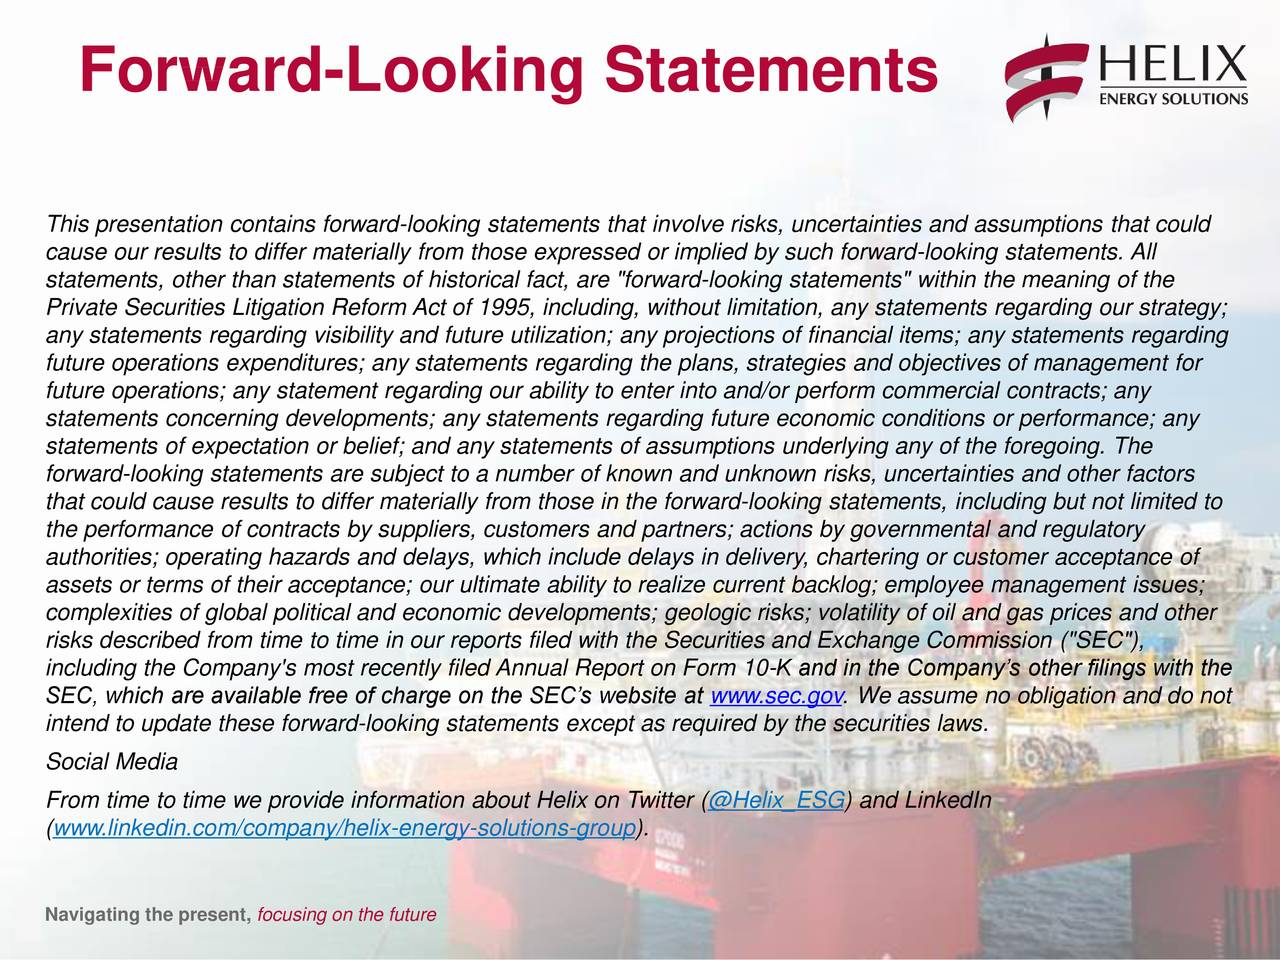 """This presentation contains forward-looking statements that involve risks, uncertainties and assumptions that could cause our results to differ materially from those expressed or implied by such forward-looking statements. All statements, other than statements of historical fact, are """"forward-looking statements"""" within the meaning of the Private Securities Litigation Reform Act of 1995, including, without limitation, any statements regarding our strategy; any statements regarding visibility and future utilization; any projections of financial items; any statements regarding future operations expenditures; any statements regarding the plans, strategies and objectives of management for future operations; any statement regarding our ability to enter into and/or perform commercial contracts; any statements concerning developments; any statements regarding future economic conditions or performance; any statements of expectation or belief; and any statements of assumptions underlying any of the foregoing. The forward-looking statements are subject to a number of known and unknown risks, uncertainties and other factors that could cause results to differ materially from those in the forward-looking statements, including but not limited to the performance of contracts by suppliers, customers and partners; actions by governmental and regulatory authorities; operating hazards and delays, which include delays in delivery, chartering or customer acceptance of assets or terms of their acceptance; our ultimate ability to realize current backlog; employee management issues; complexities of global political and economic developments; geologic risks; volatility of oil and gas prices and other risks described from time to time in our reports filed with the Securities and Exchange Commission (""""SEC""""), including the Company's most recently filed Annual Report on Form 10-K and in the Company's other filings with the SEC, which are available free of charge on the SEC's website at www.sec.go"""